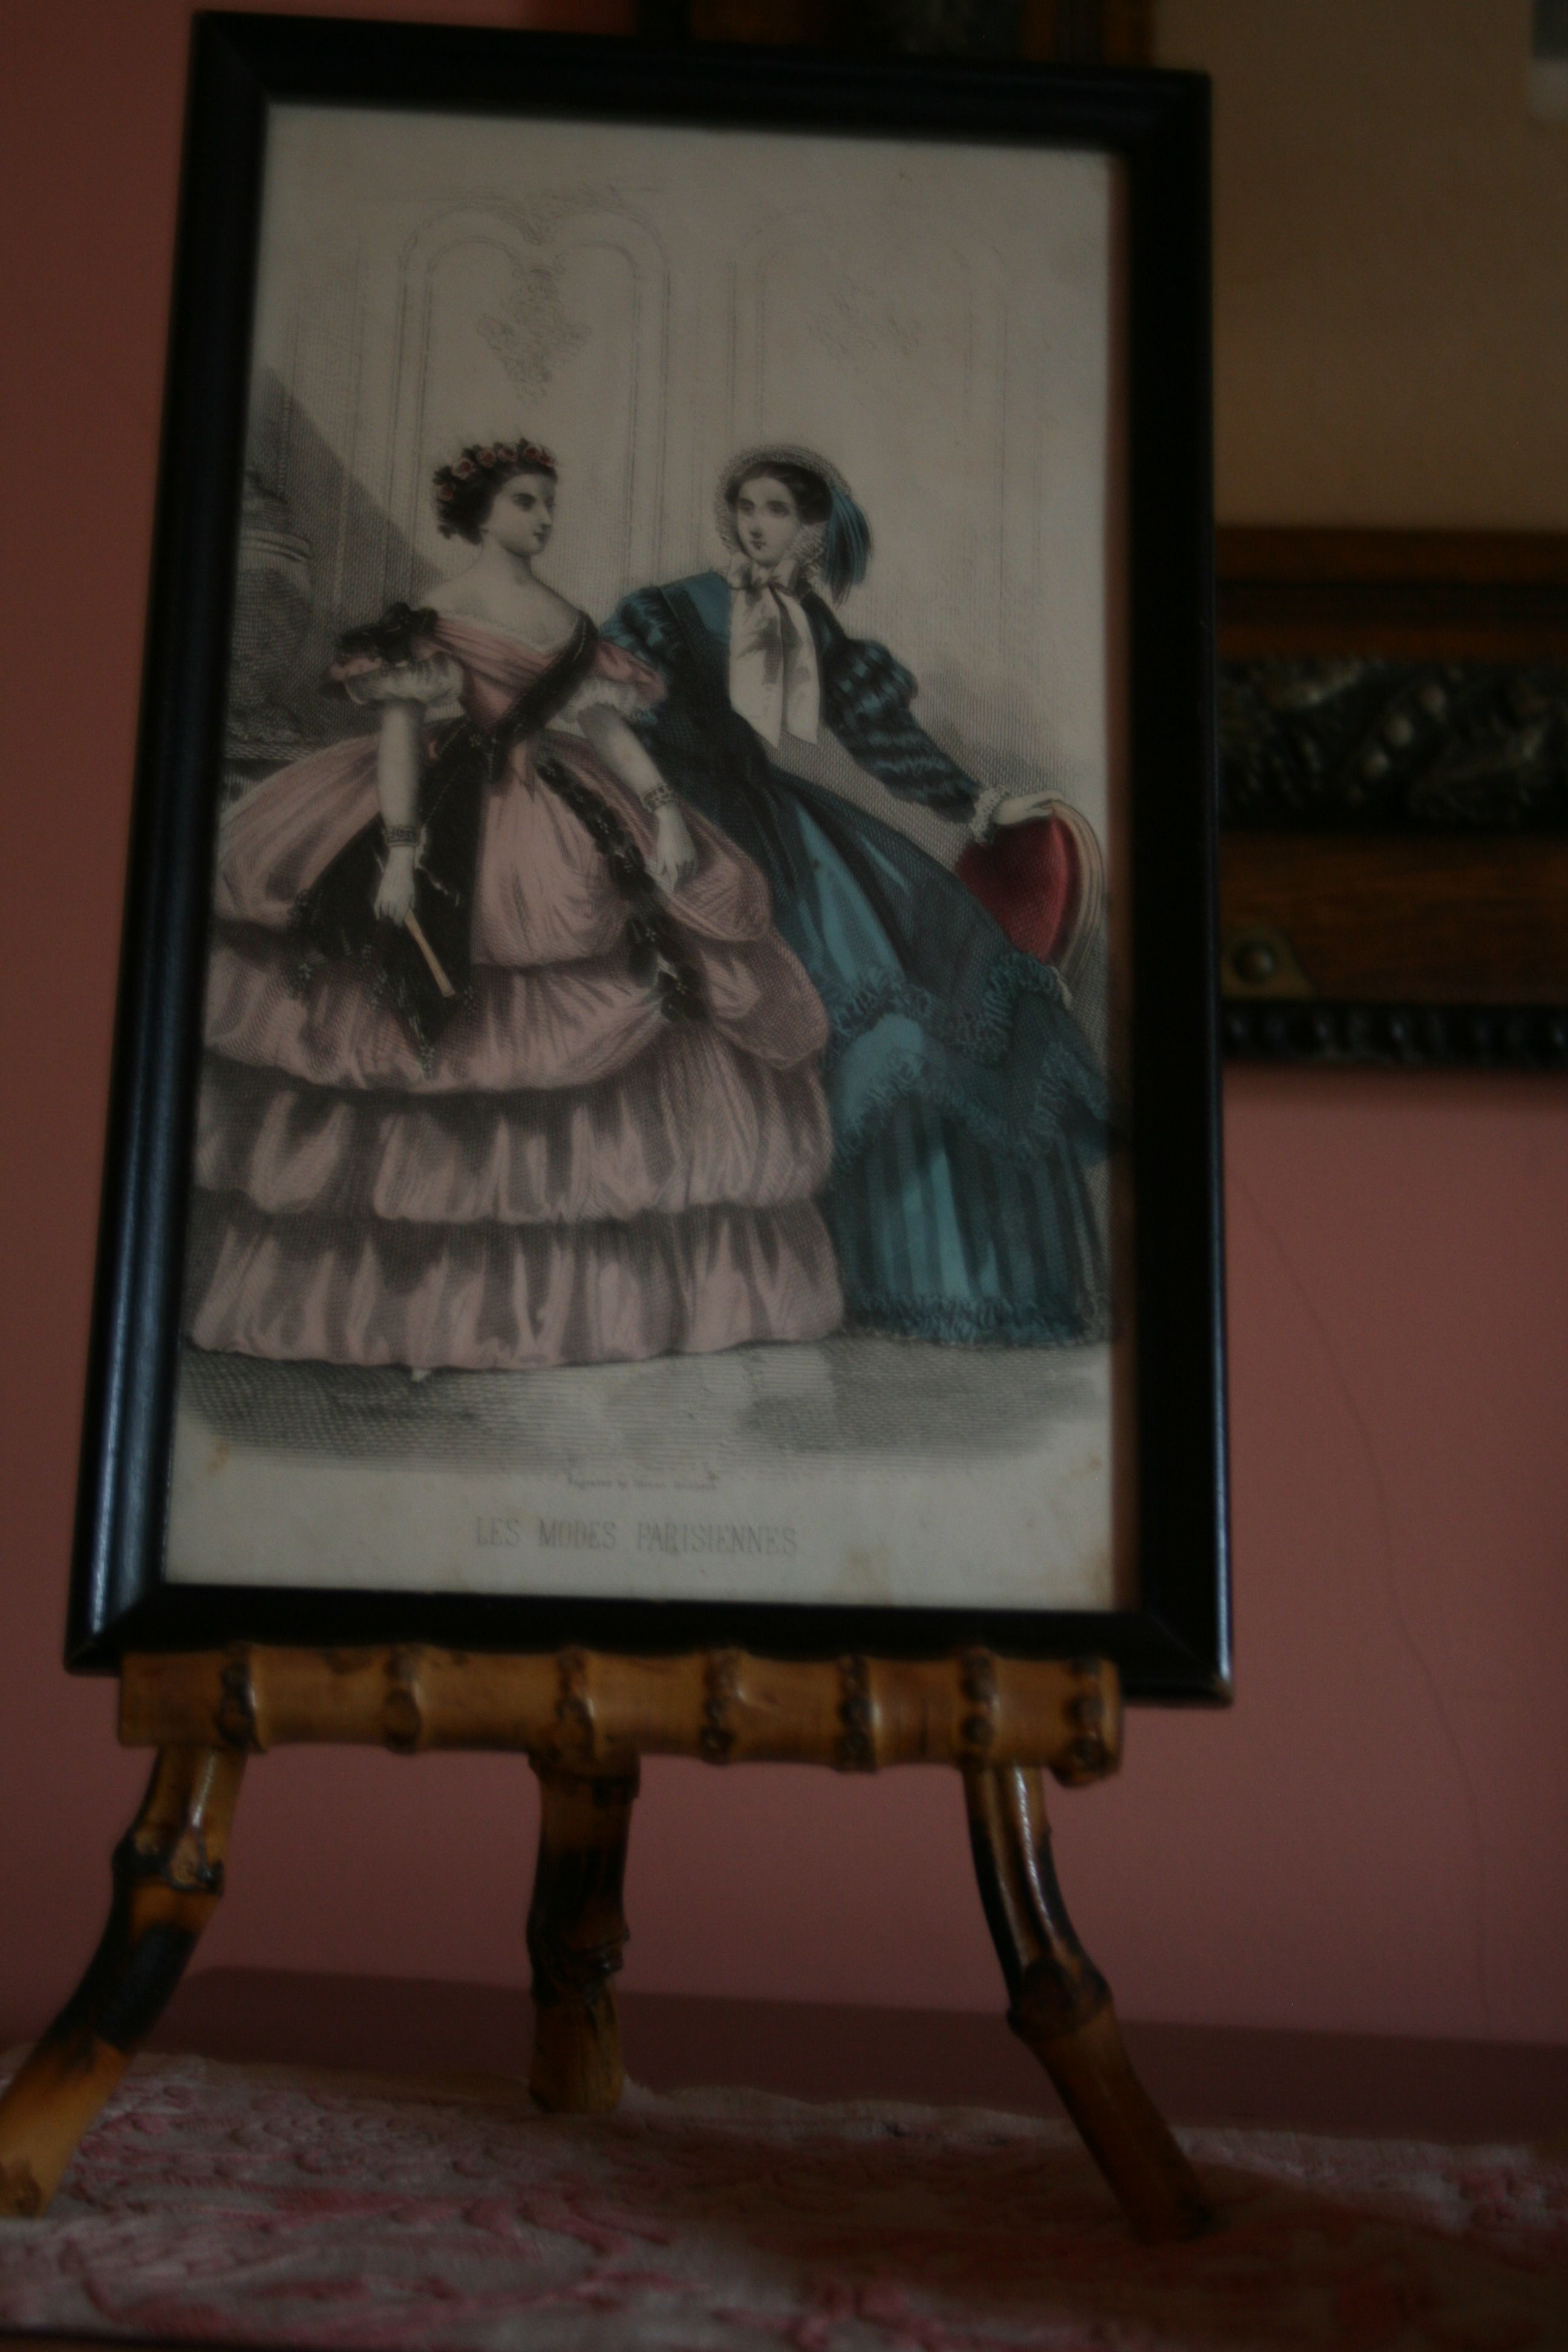 Slifer House Museum Collection - Victorian Dress Patterns